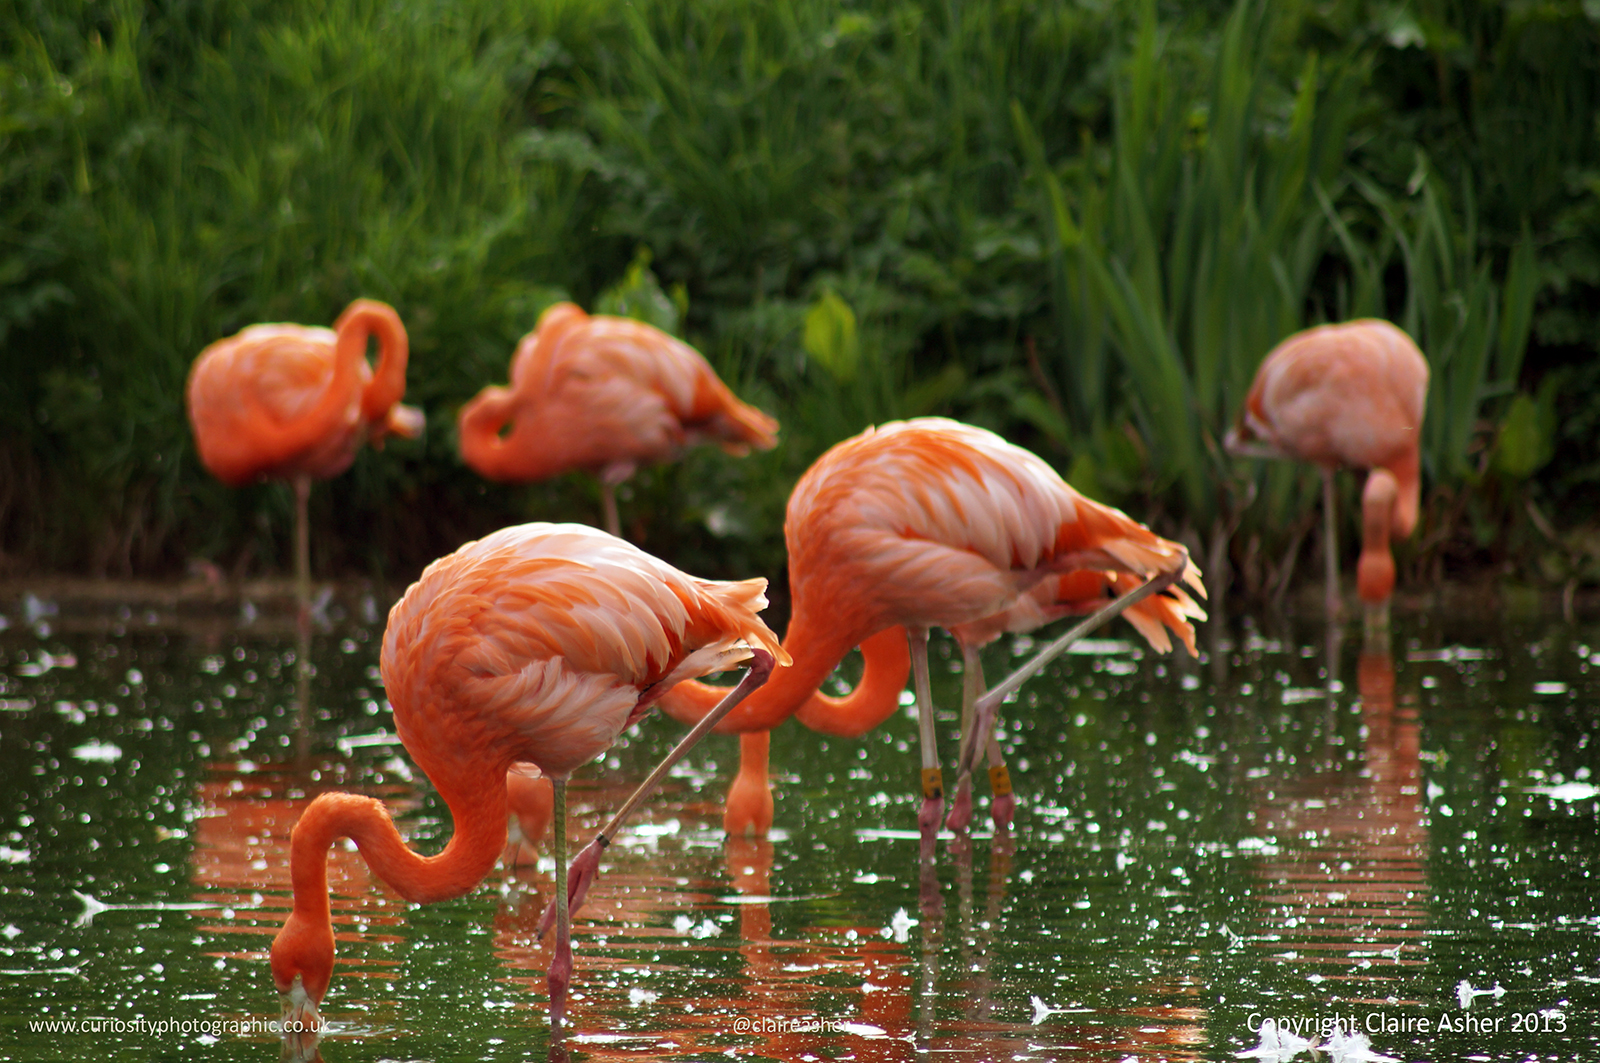 Greater Flamingos (Phoenicopterus roseus) photographed in captivity in the UK in 2013.